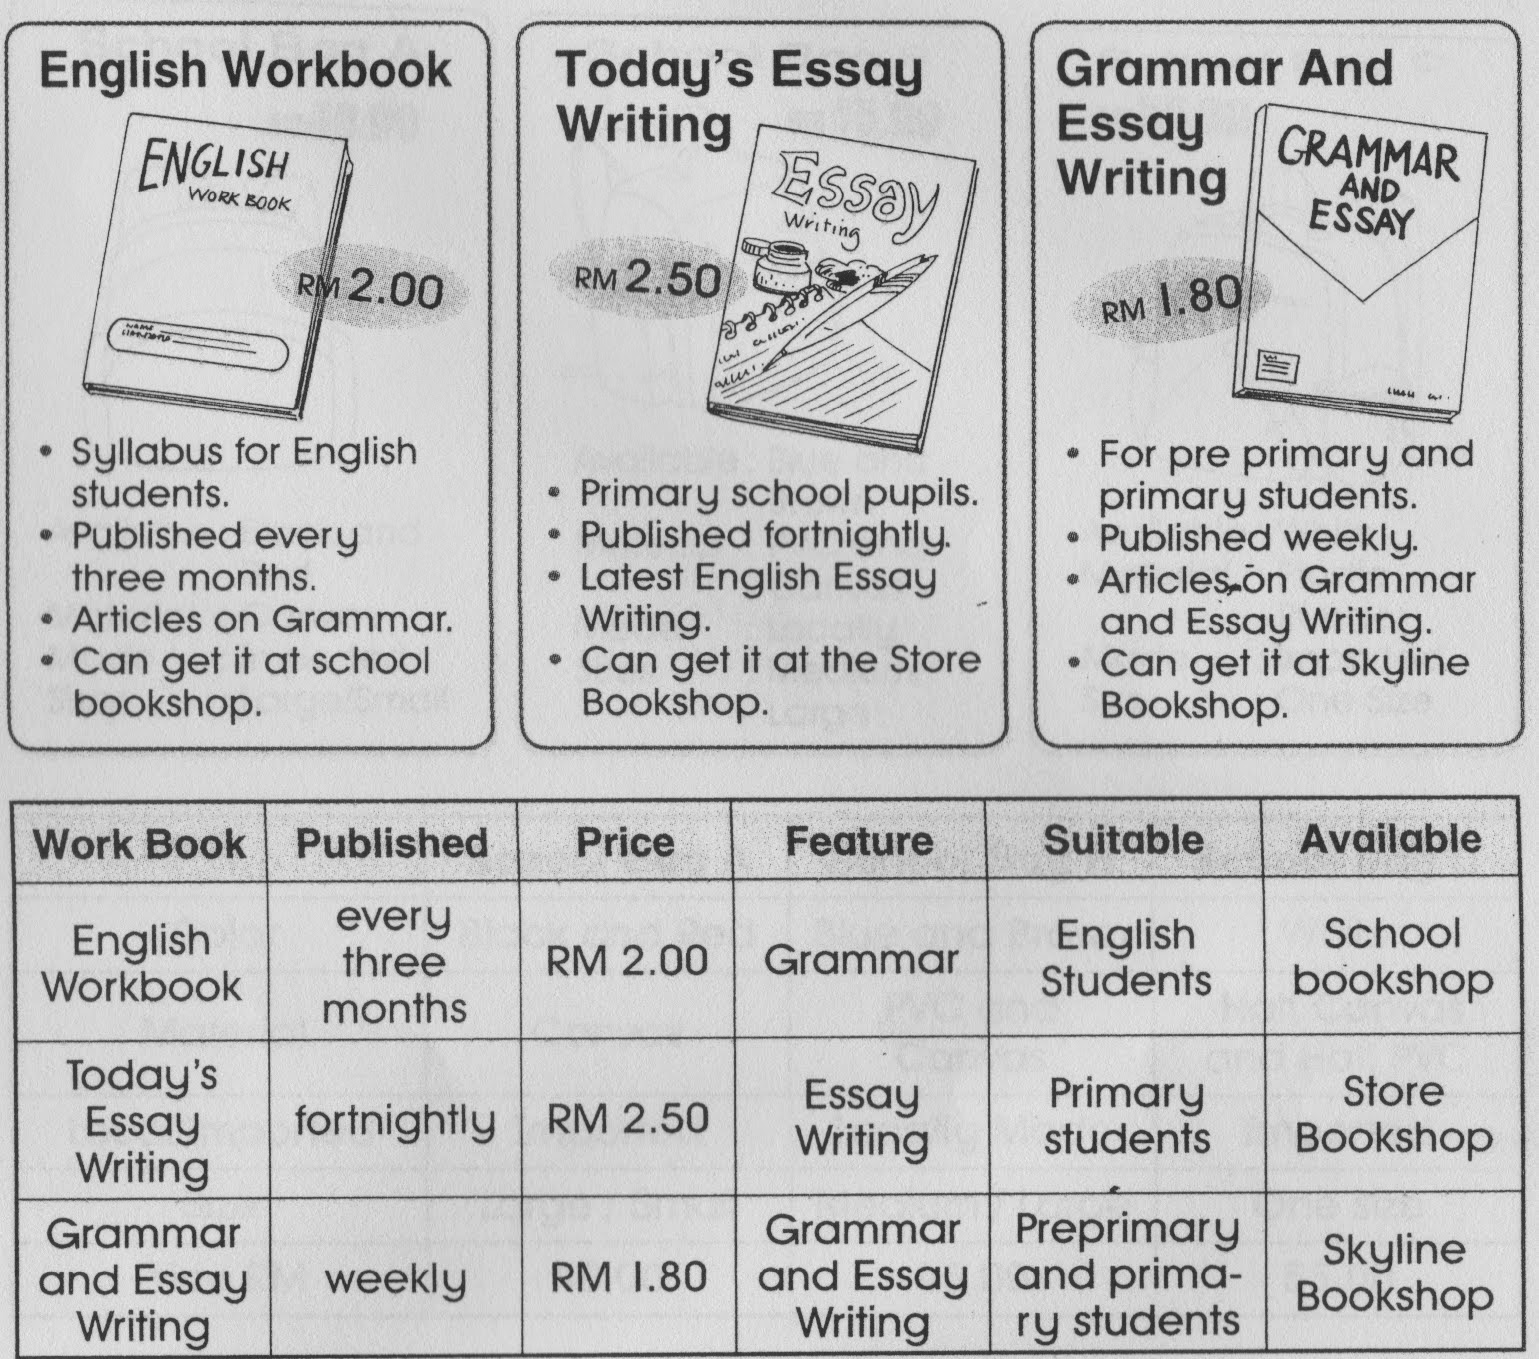 essay model essays spm with model essay english upsr ransom  learning english daily english essays for kbsr paper thesis statements for  argumentative essays also essay health